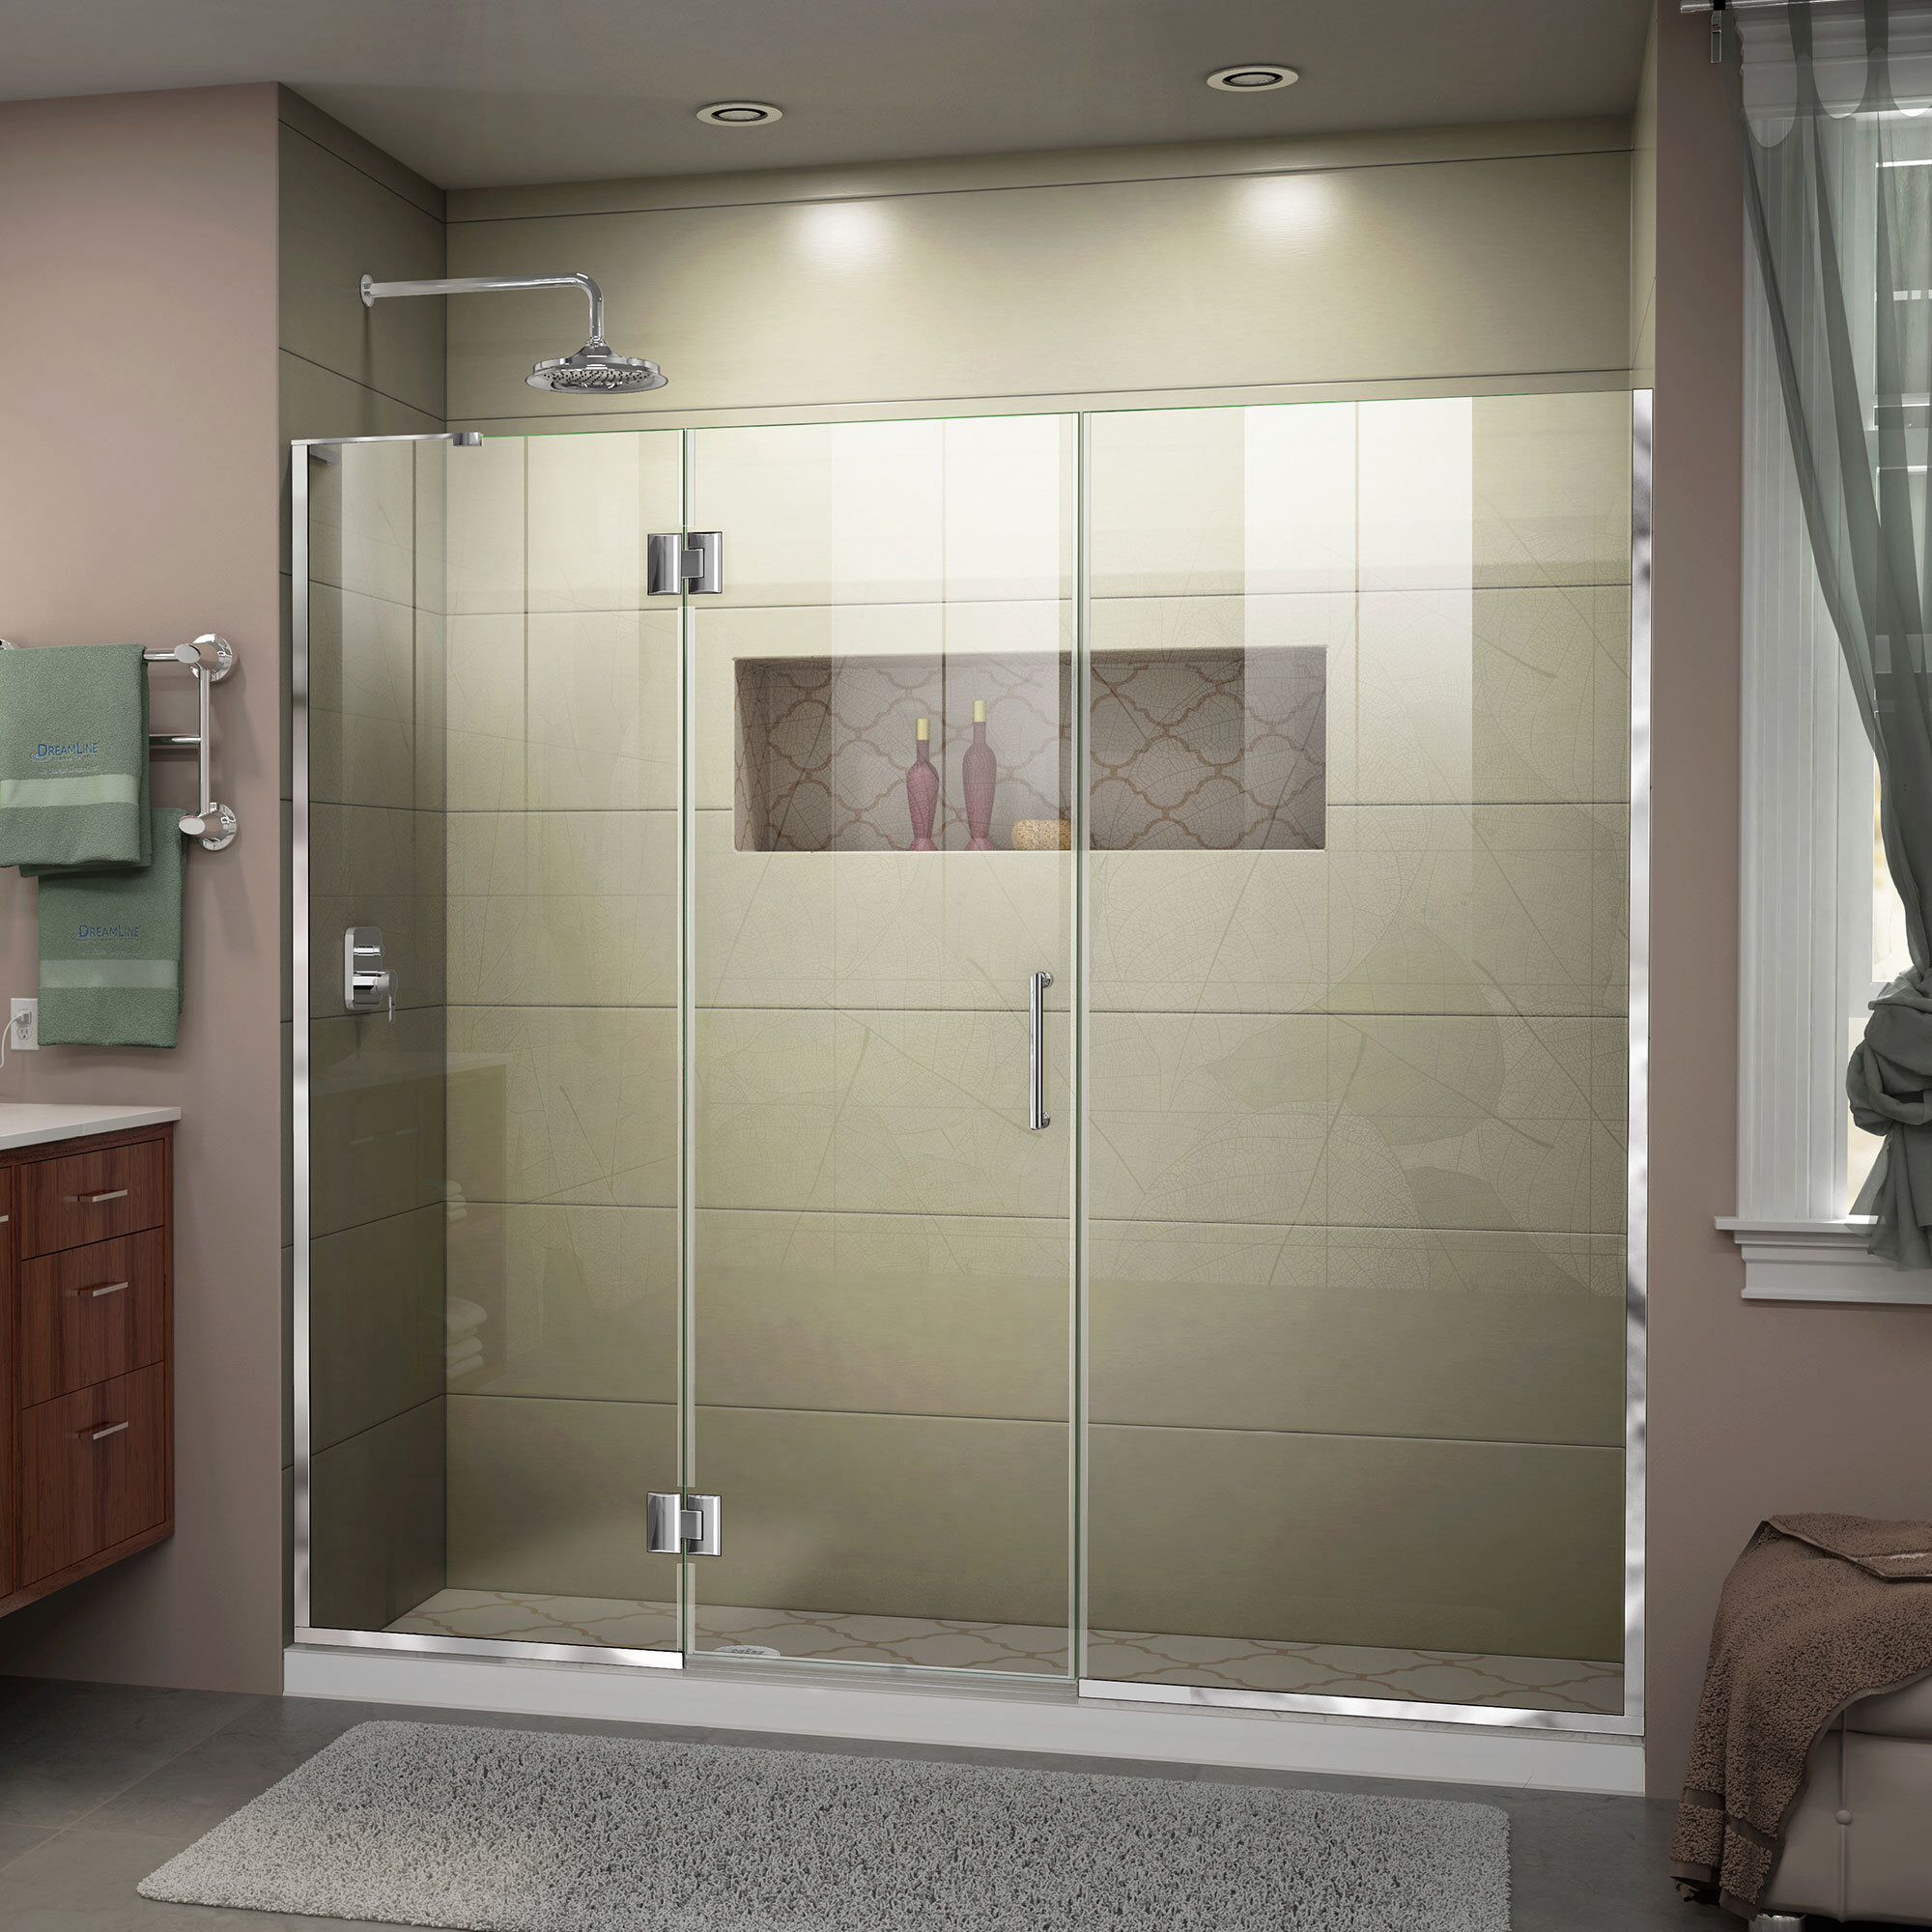 Unidoor X 72 W X 72 H Hinged Frameless Shower Door With Clearmax Technology Tub Shower Doors Shower Doors Frameless Hinged Shower Door